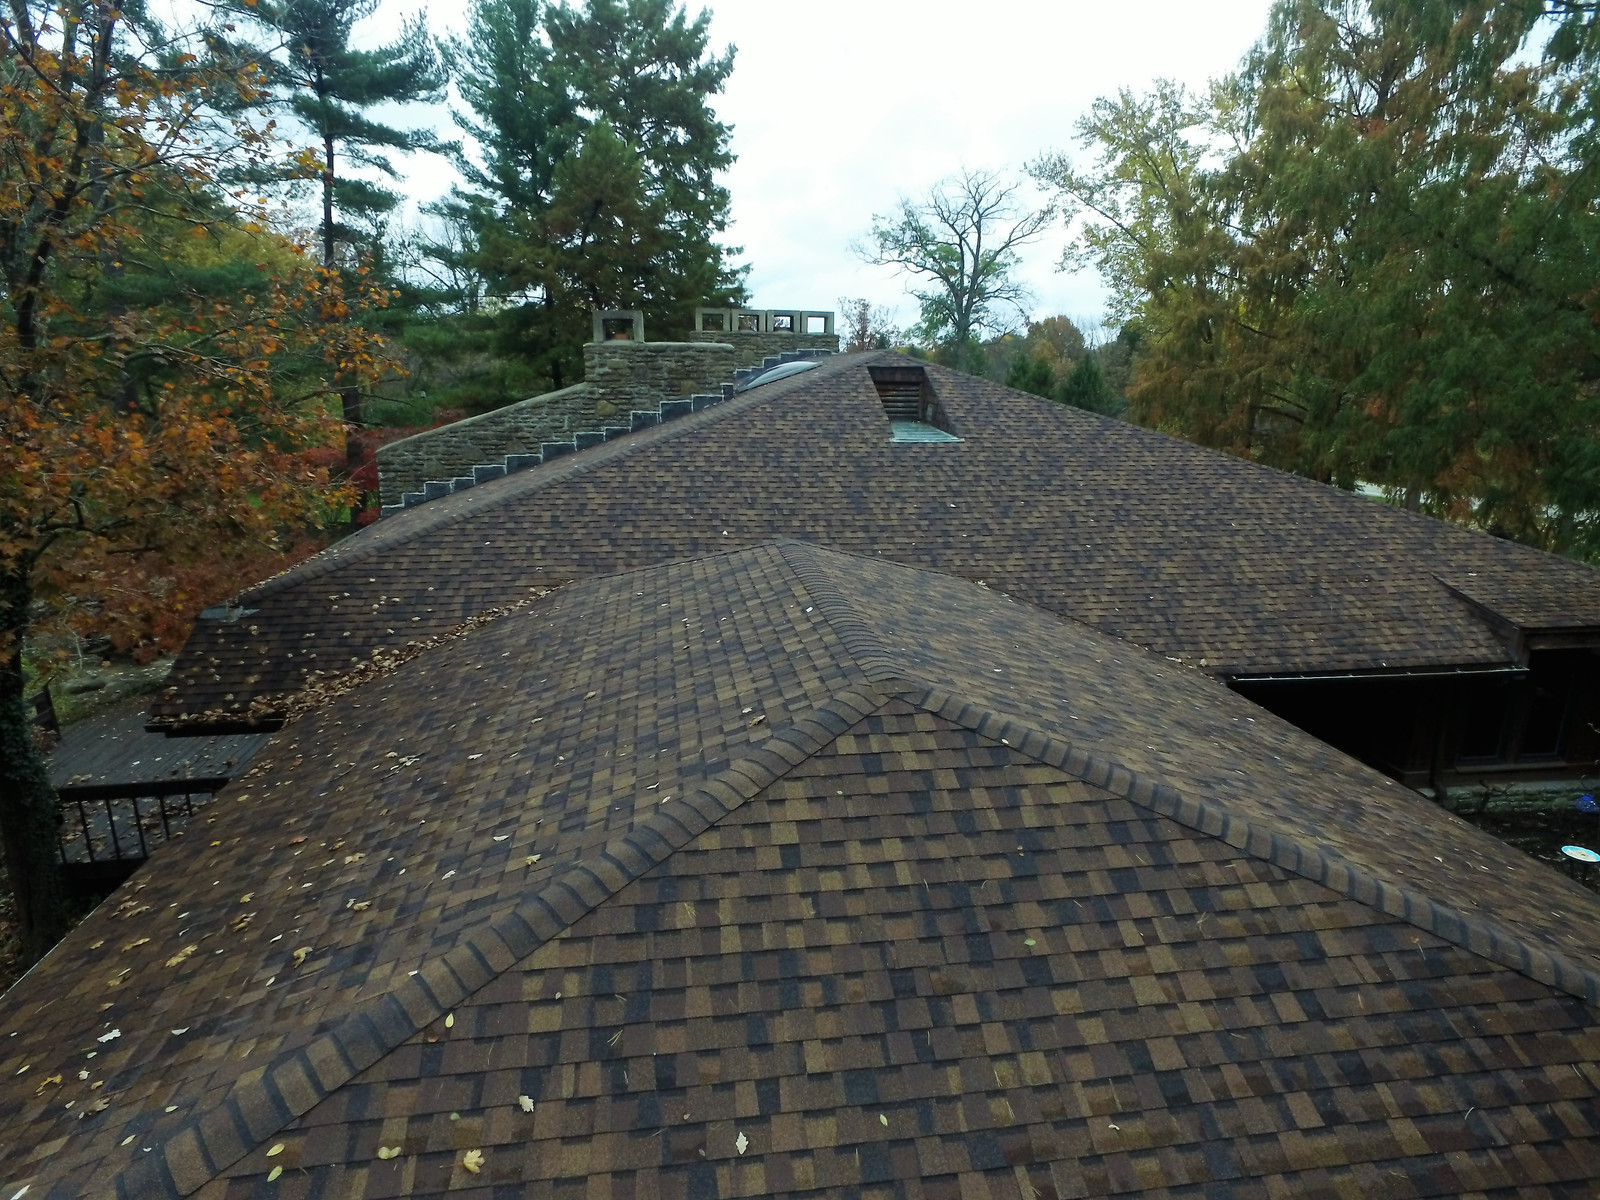 Roofing Contractor Ohio The Summit Roofing